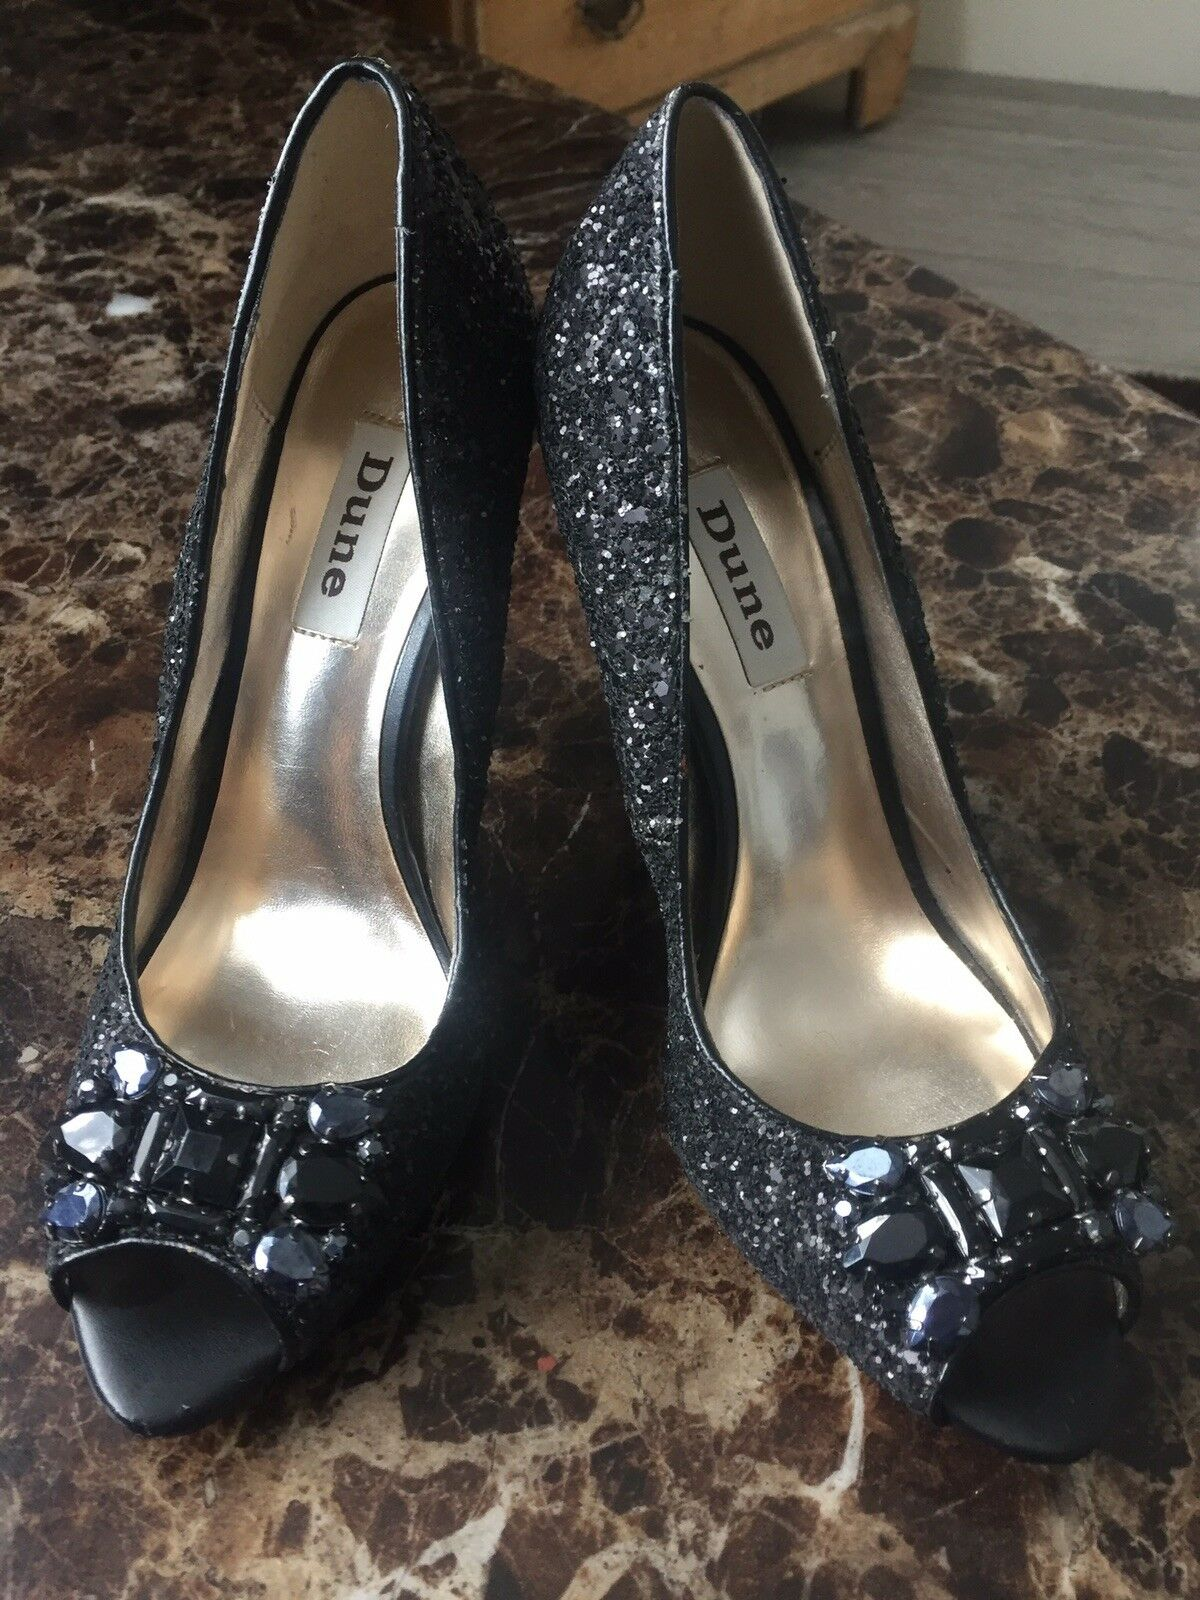 Dunne Ladies shoes Size 5, Worn Once To A Wedding.  Immaculate Condition